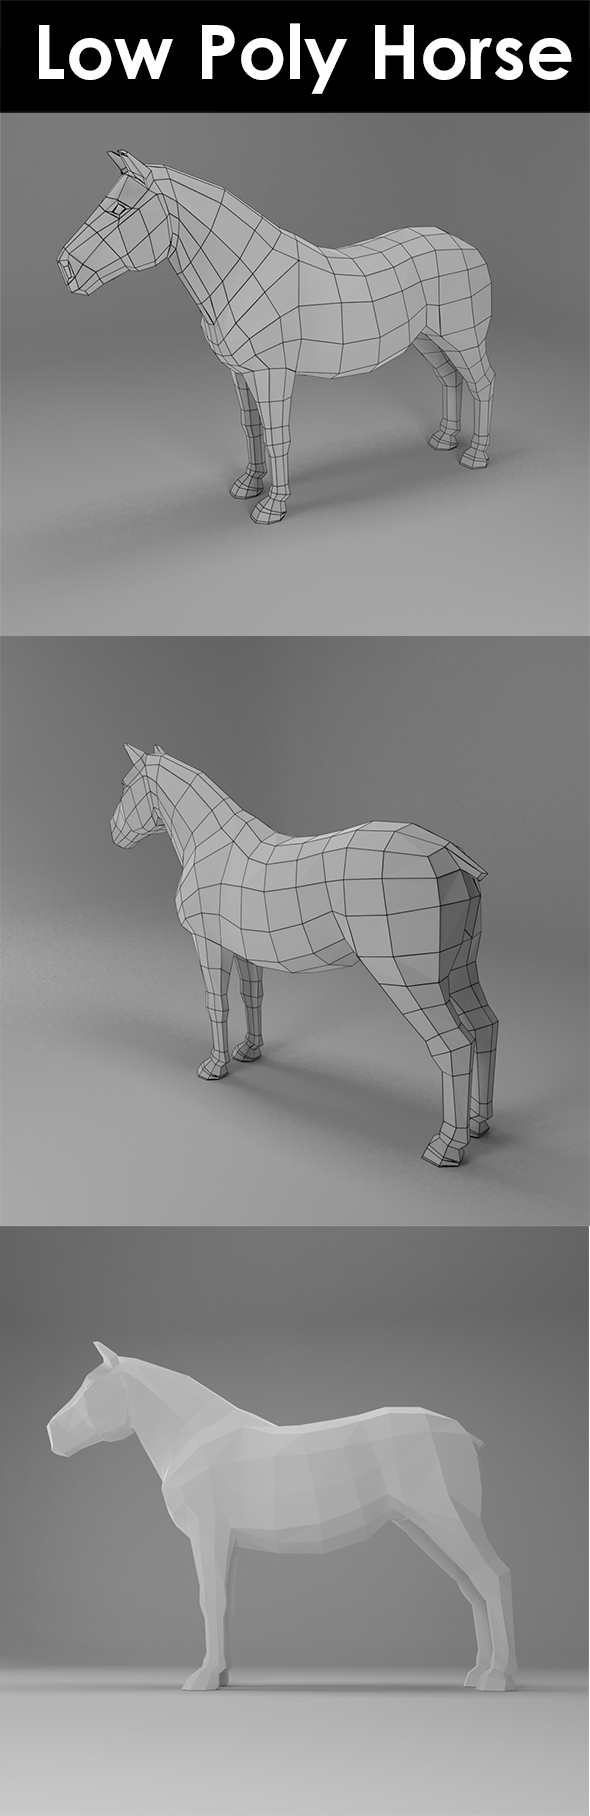 Low poly horse - 3DOcean Item for Sale